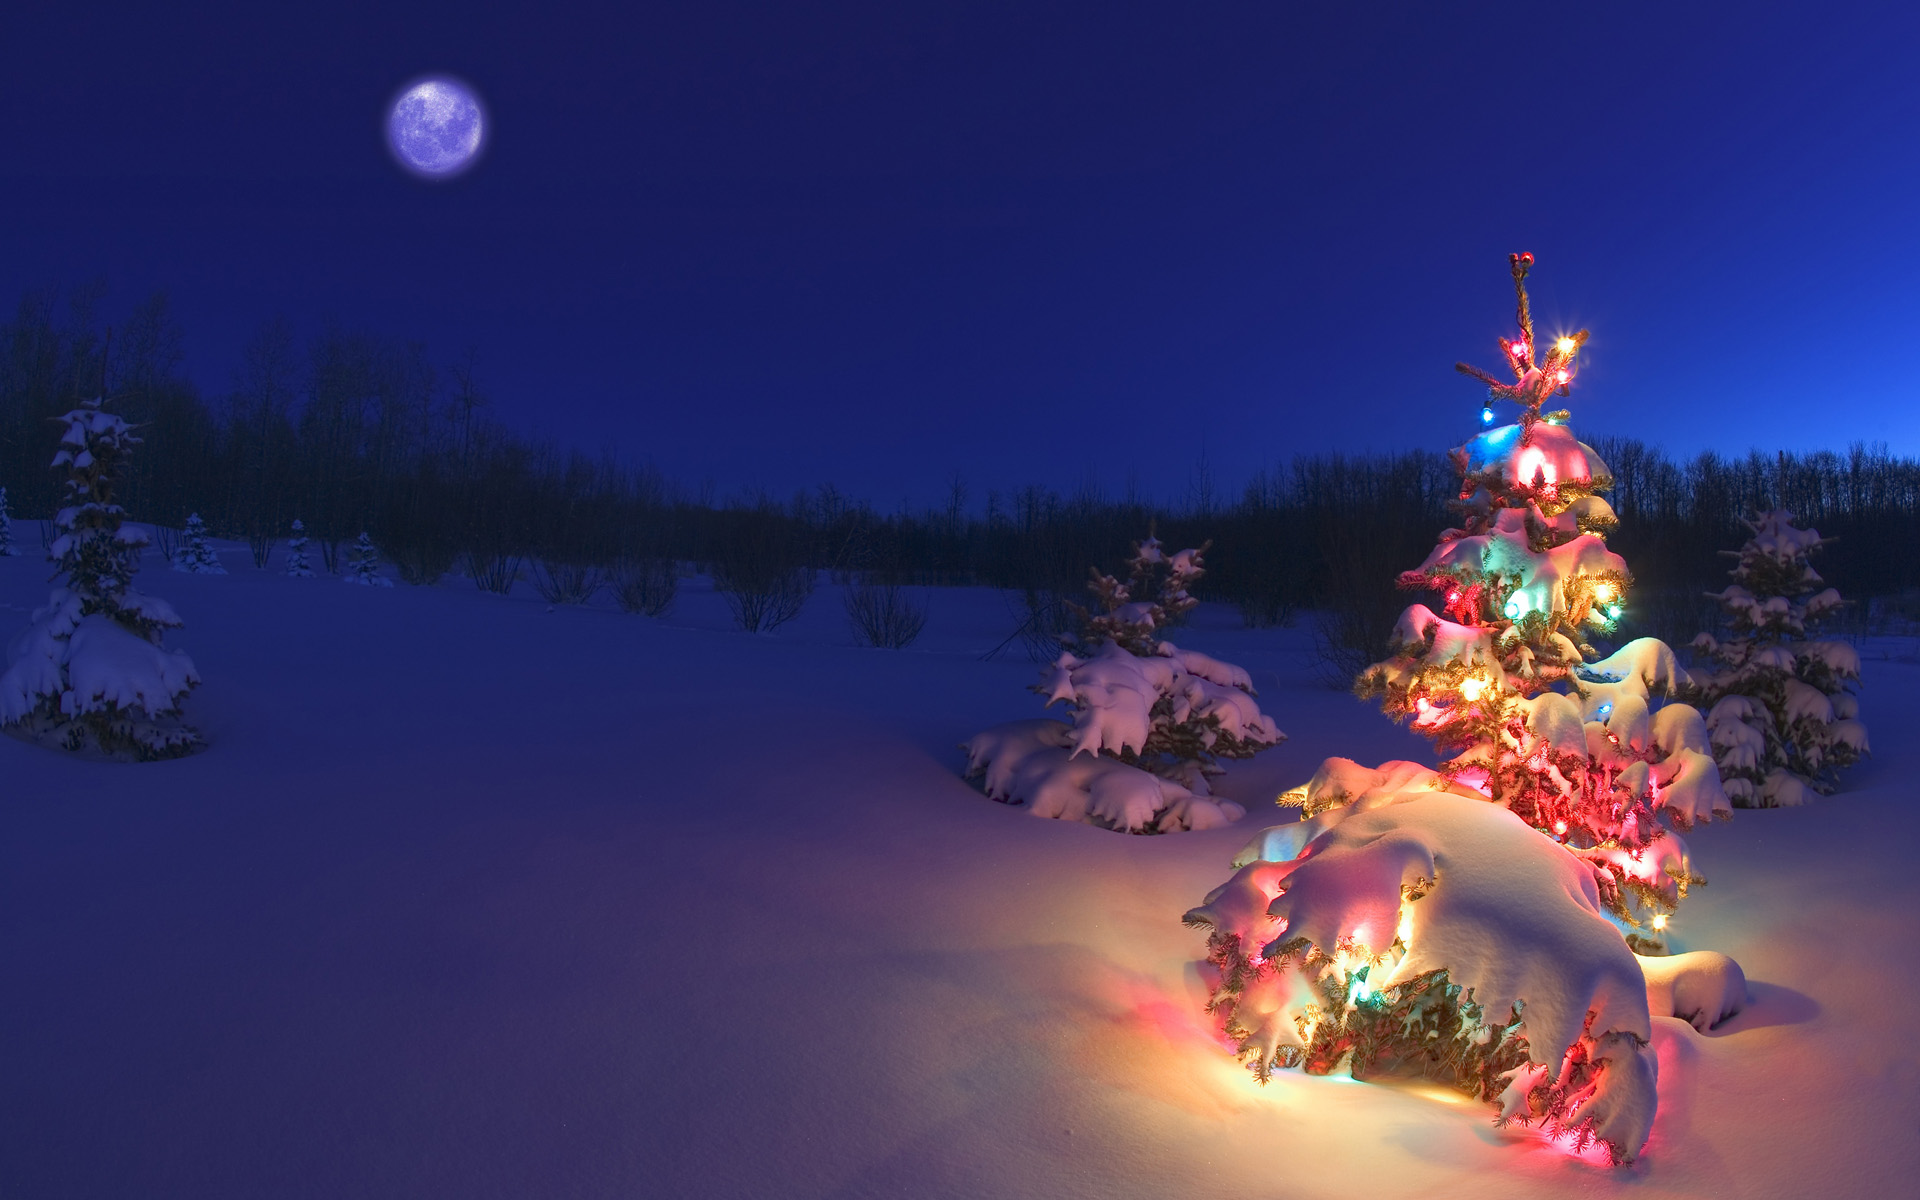 Christmas Holiday Wallpaper Hd 4